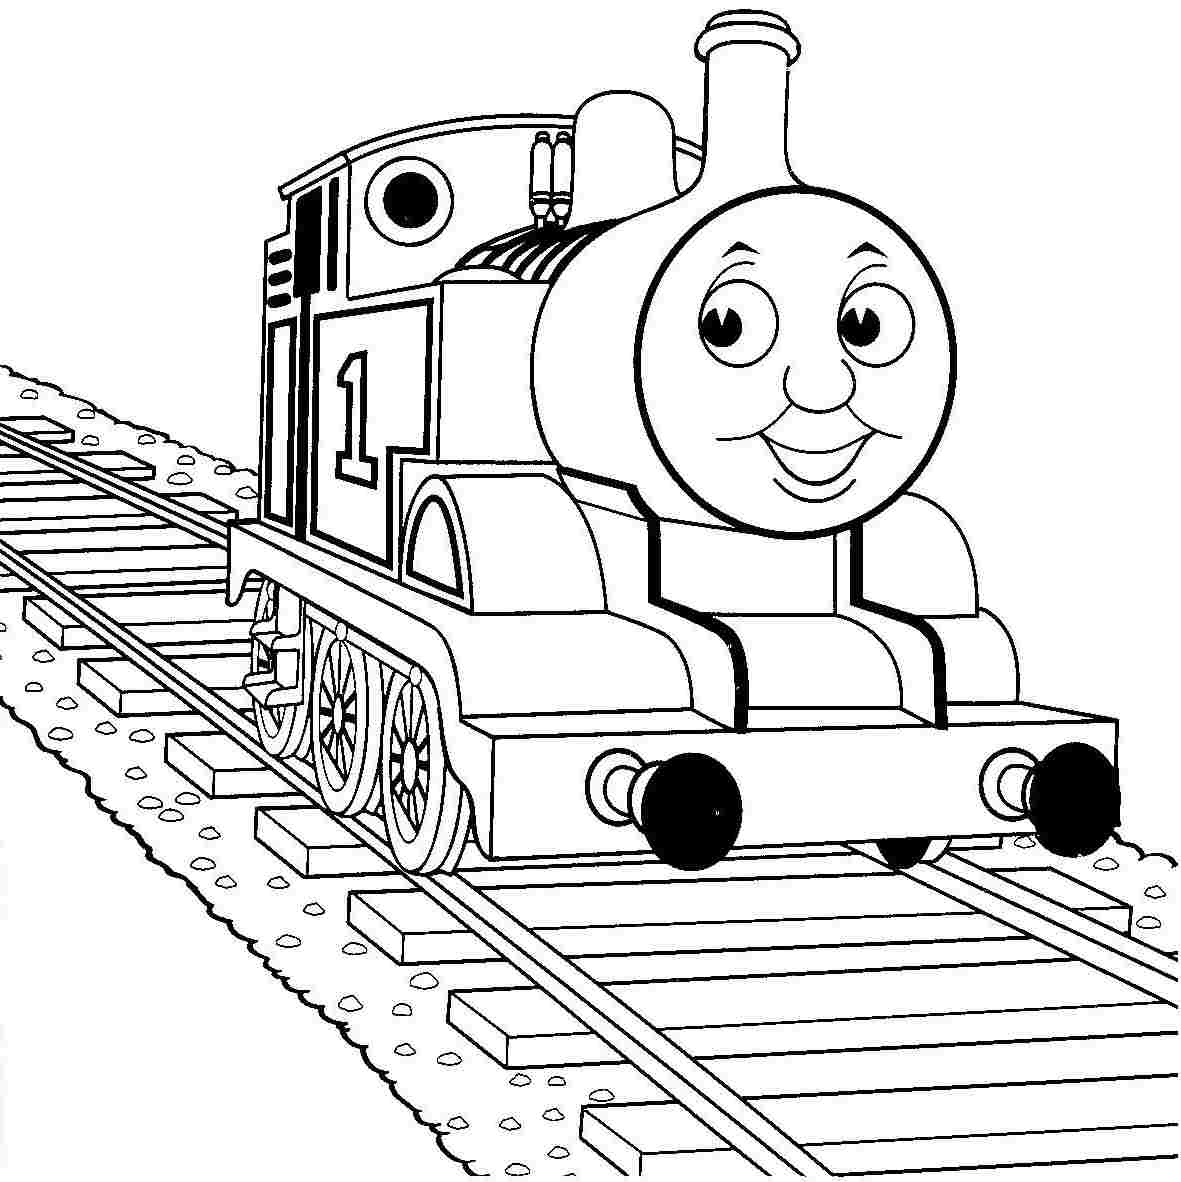 coloring thomas the train drawing simple thomas the train coloring pages thomas the train coloring the thomas drawing train